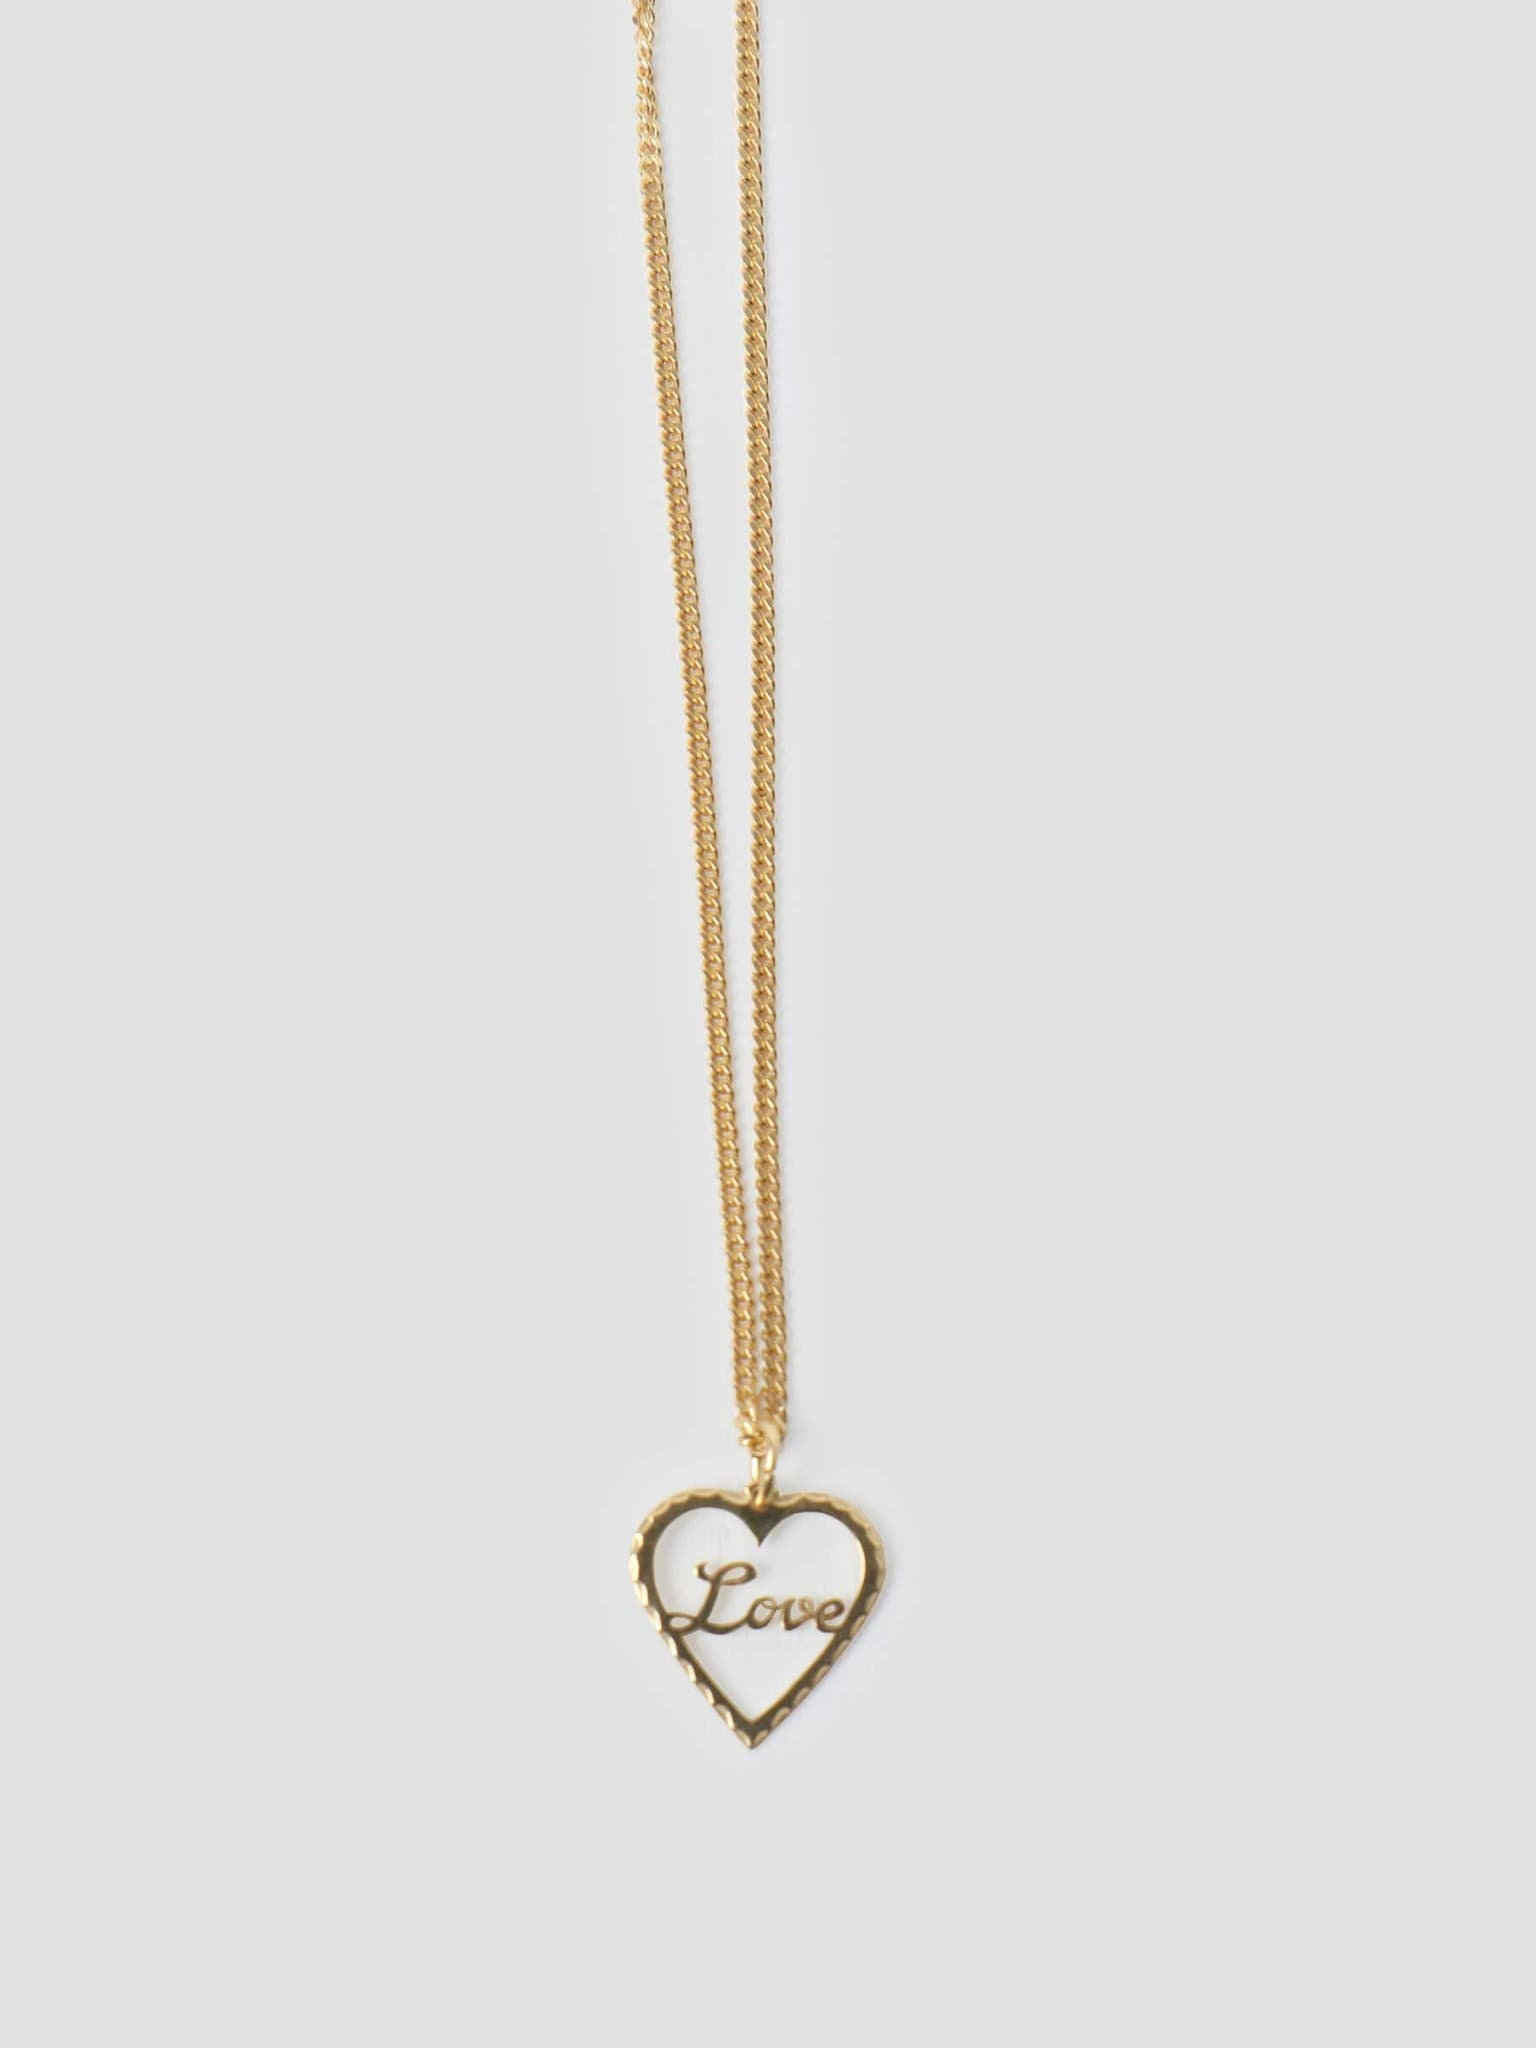 by Freshcotton Love Necklace 55cm 14K Gold Plated